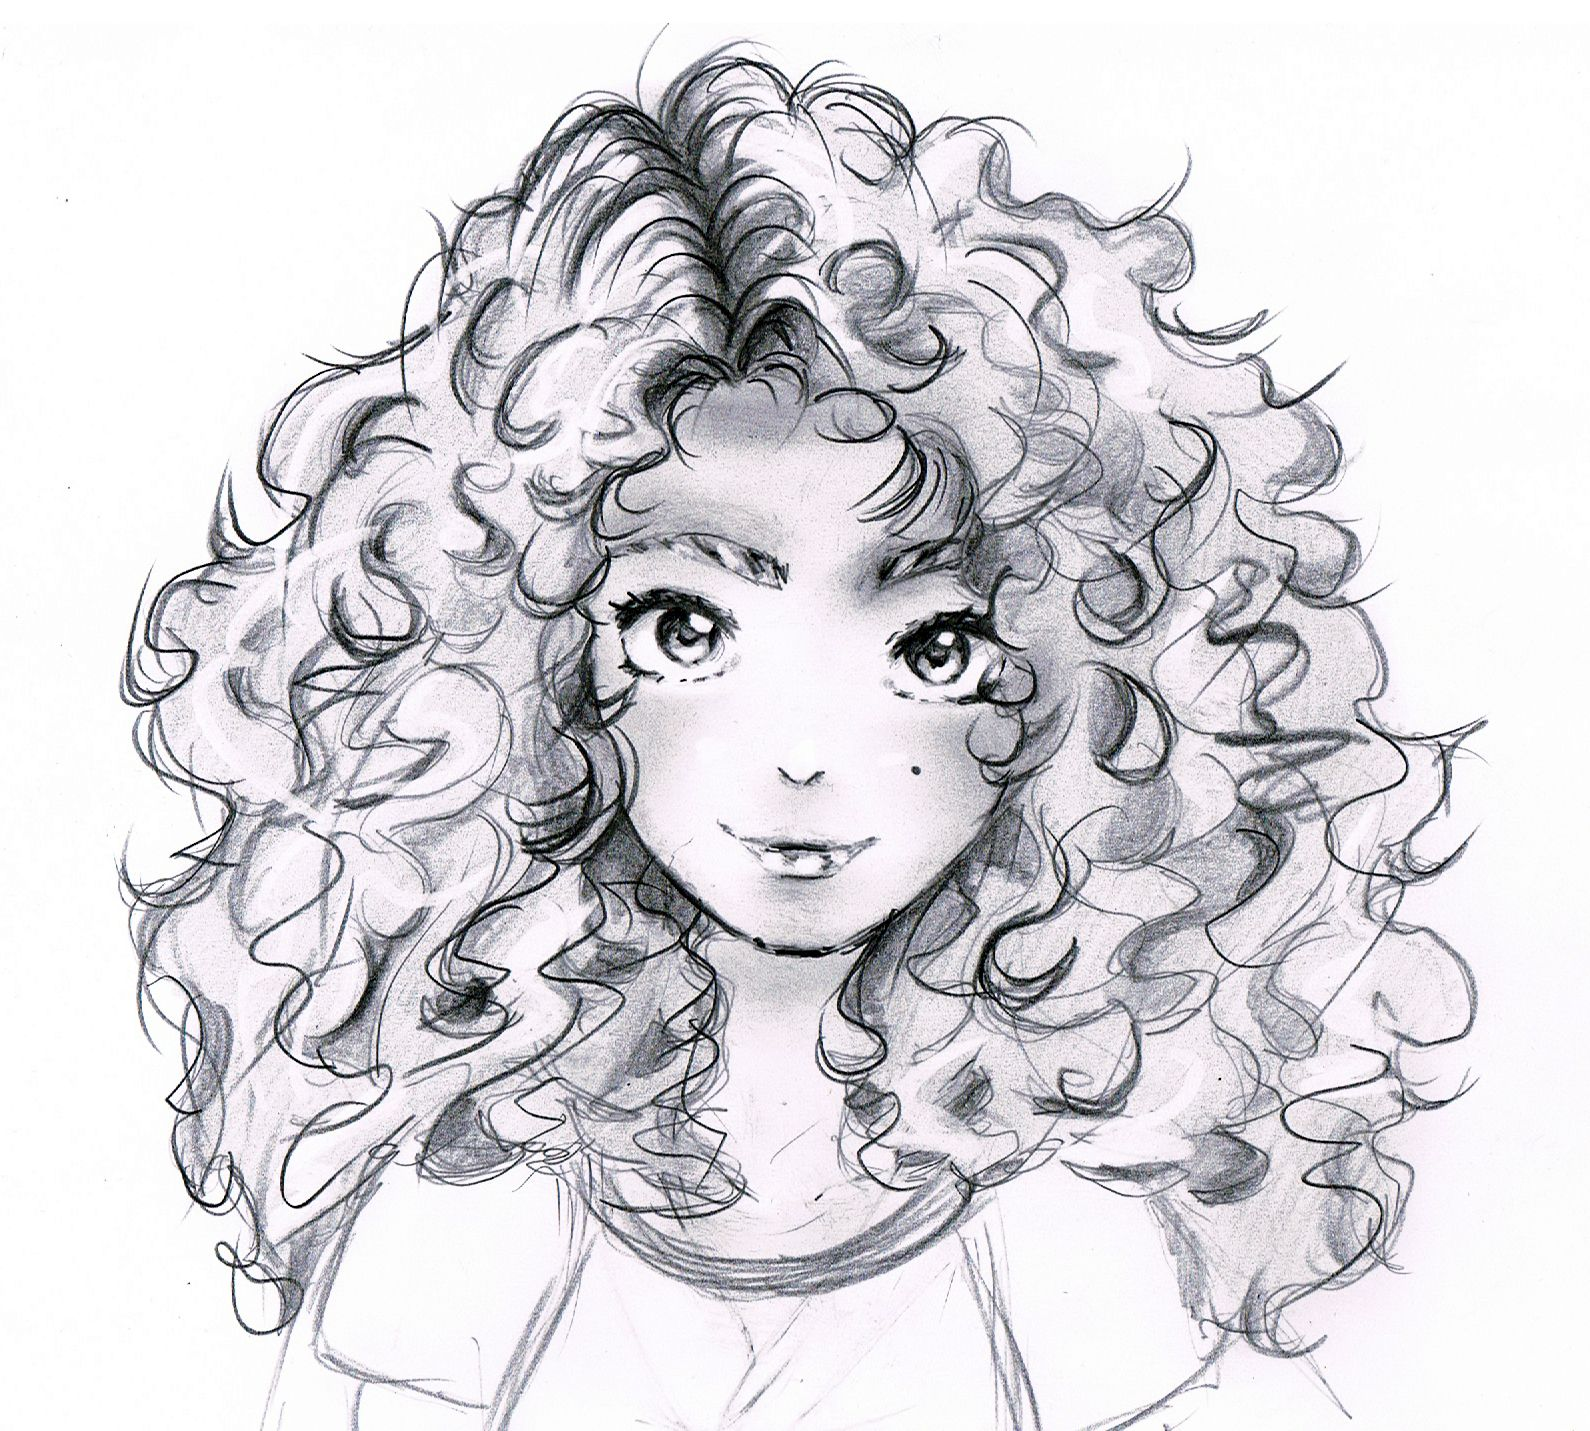 Curly hair curly hair girl anime manga pencil scetch drawing art